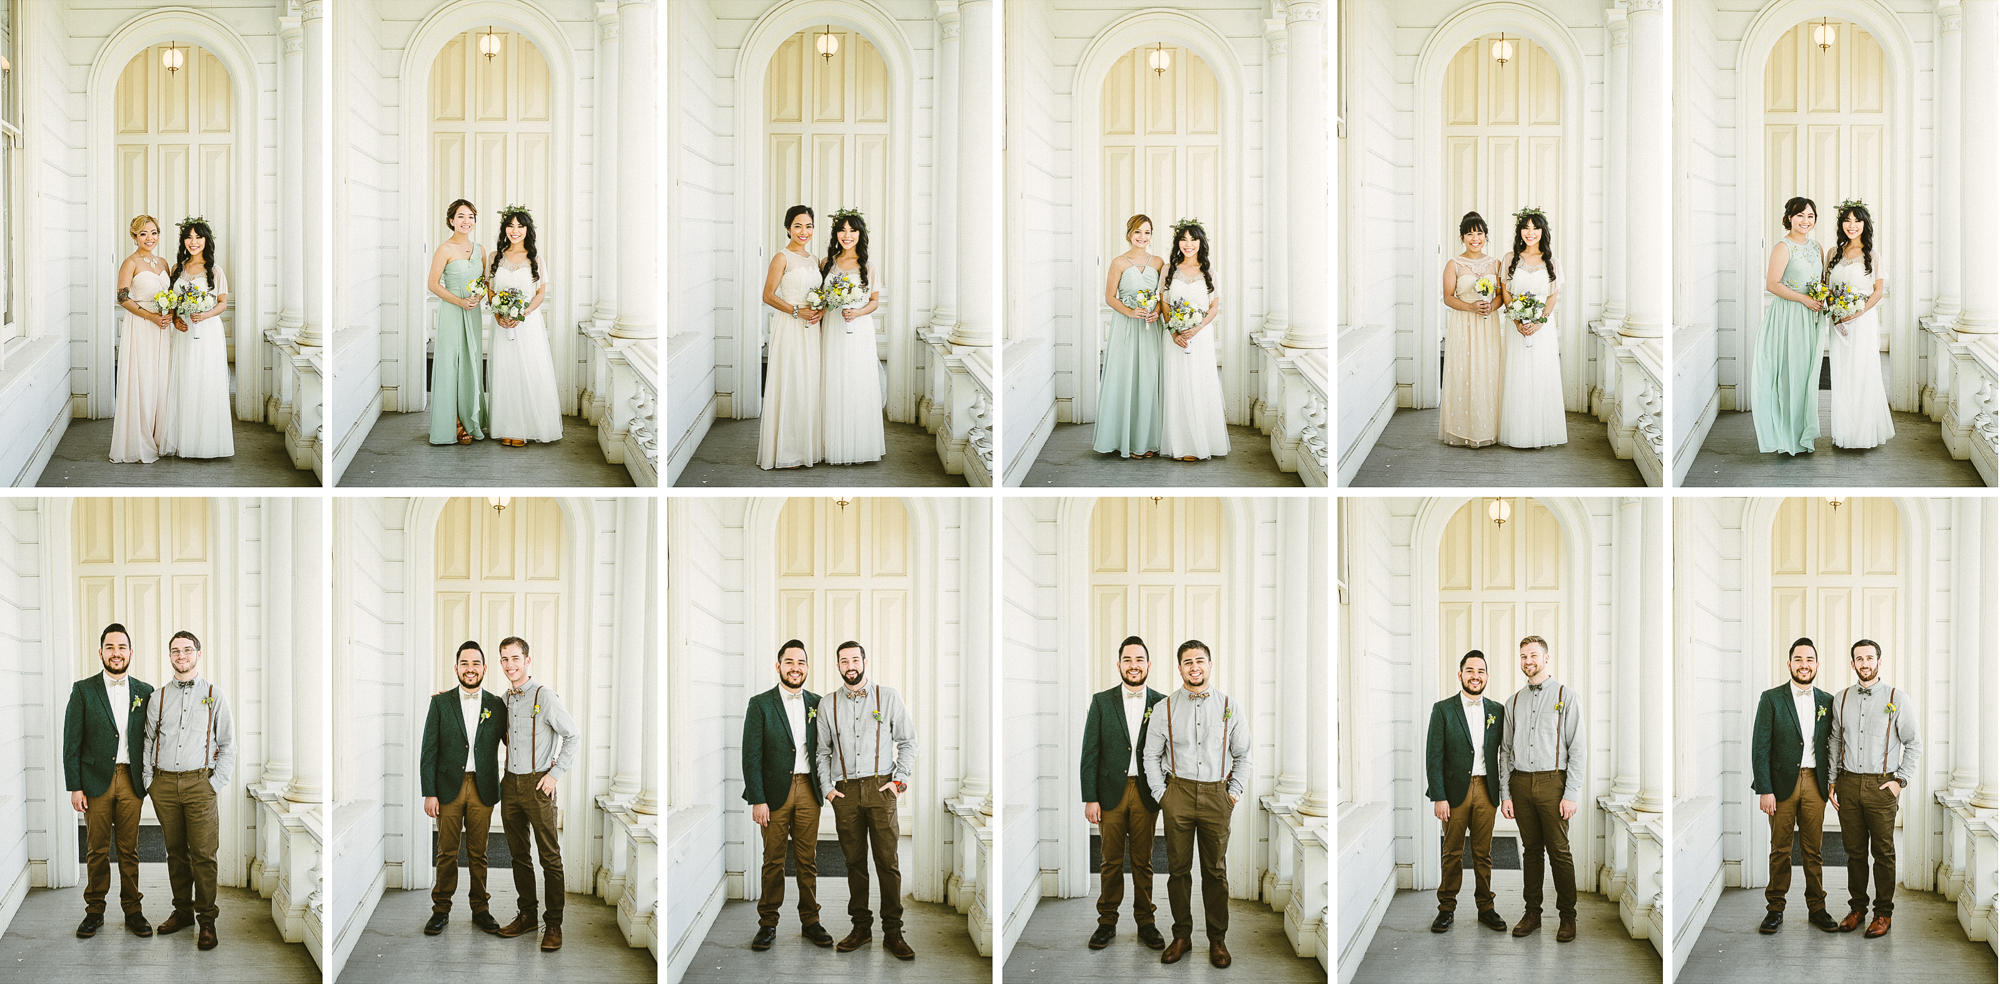 Isaiah & Taylor Photography - Los Angeles - Destination Wedding Photographers - Heritage Square Museum -70.jpg